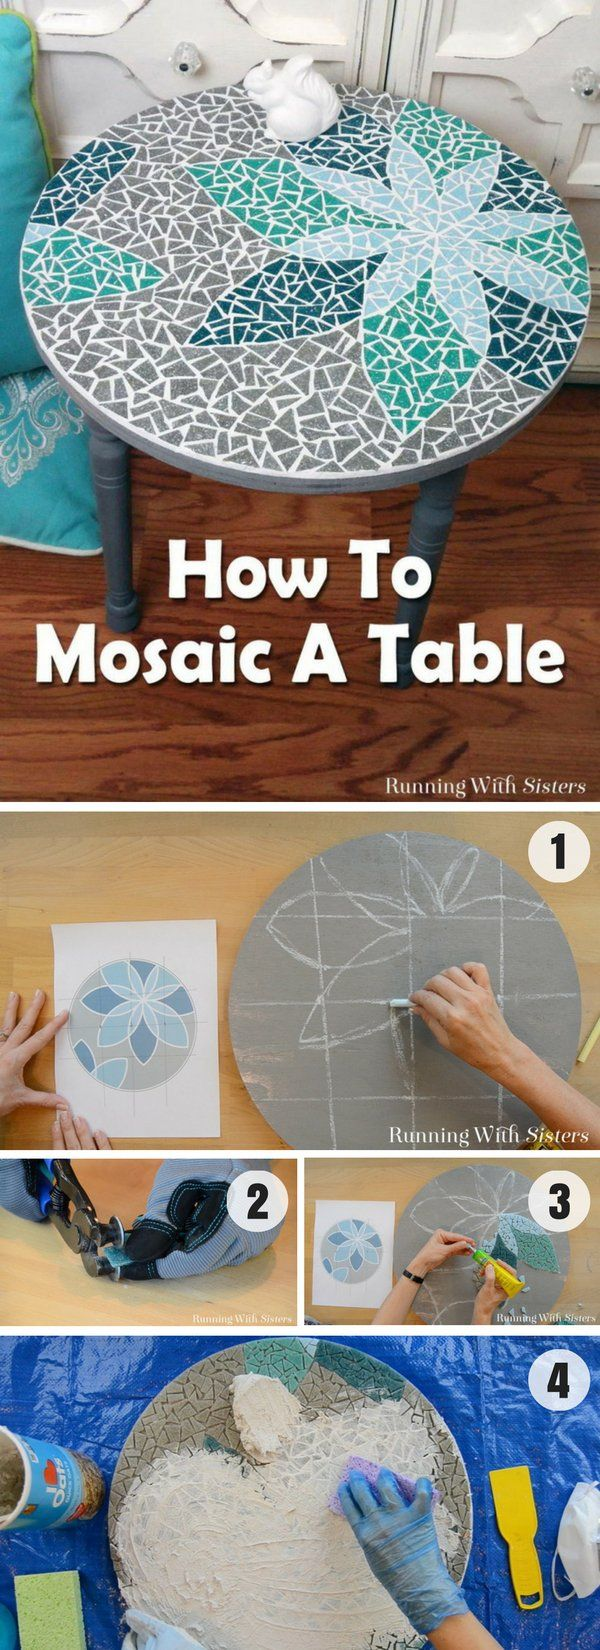 Small mosaic tiles for crafts - 18 Stunning Diy Mosaic Craft Projects For Easy Home Decor